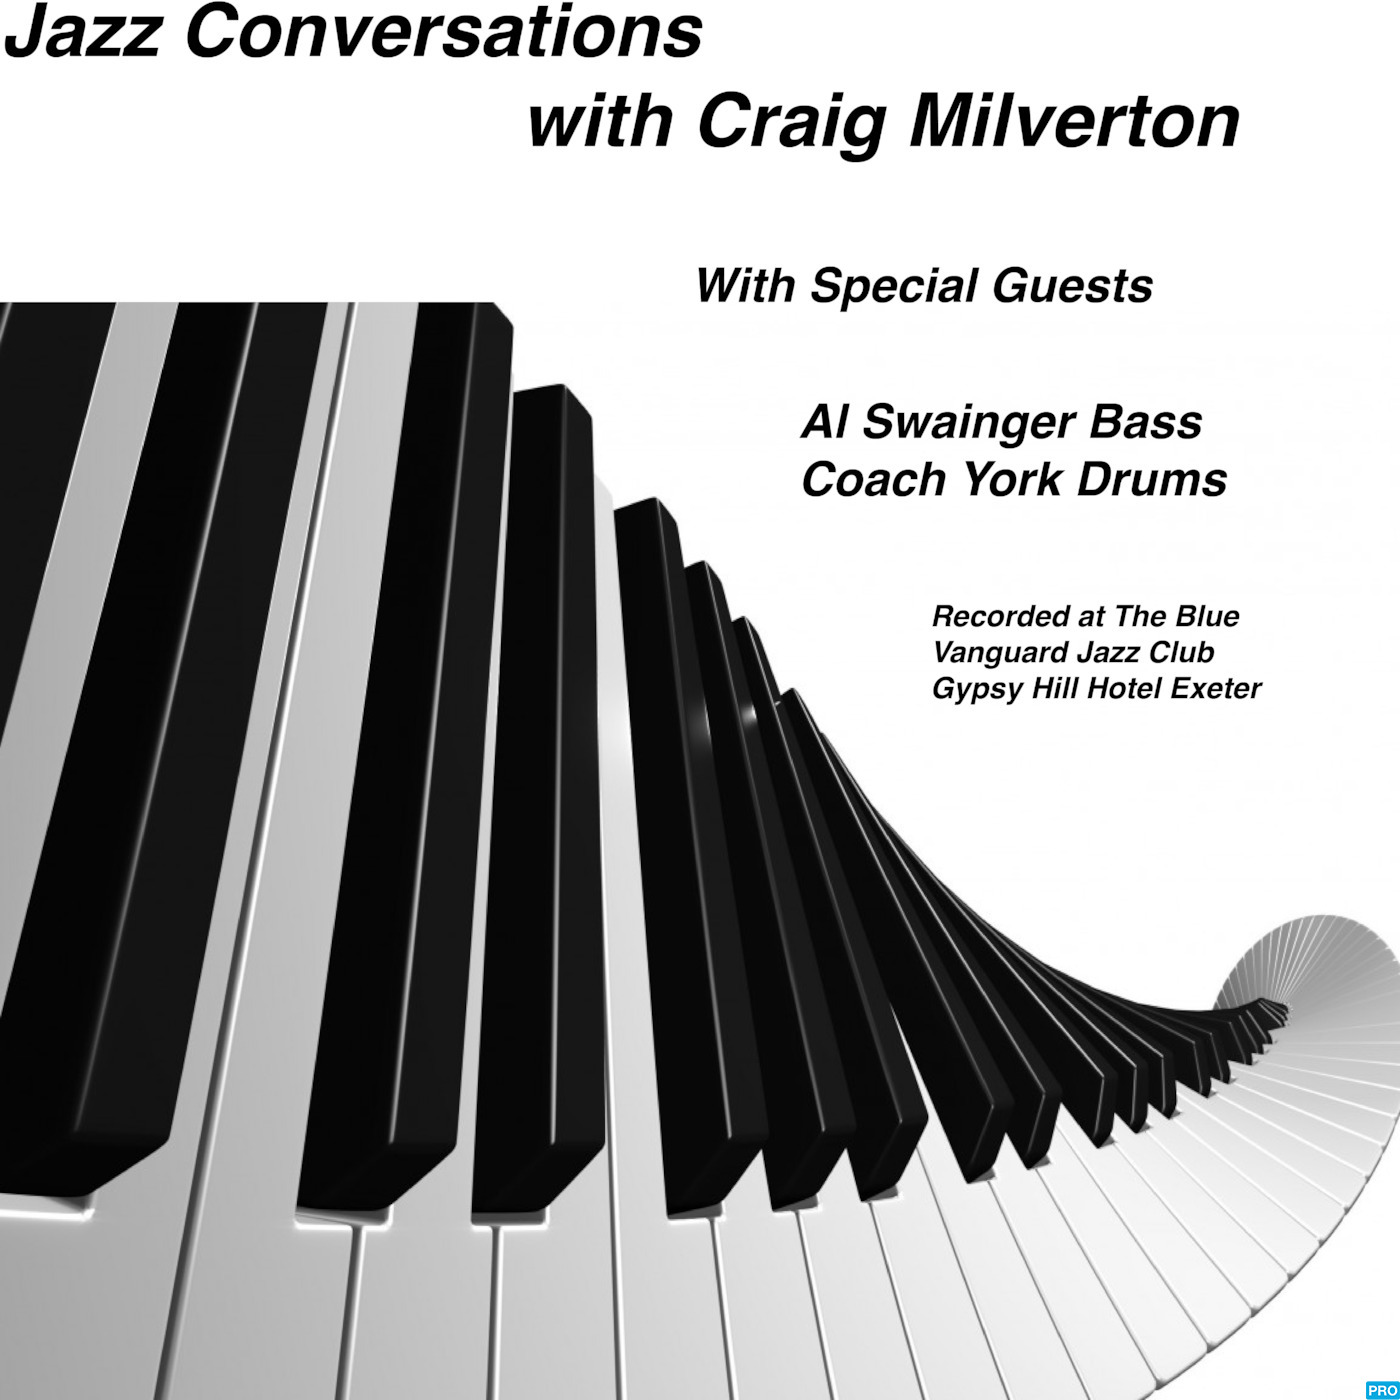 Jazz Conversations with Craig Milverton